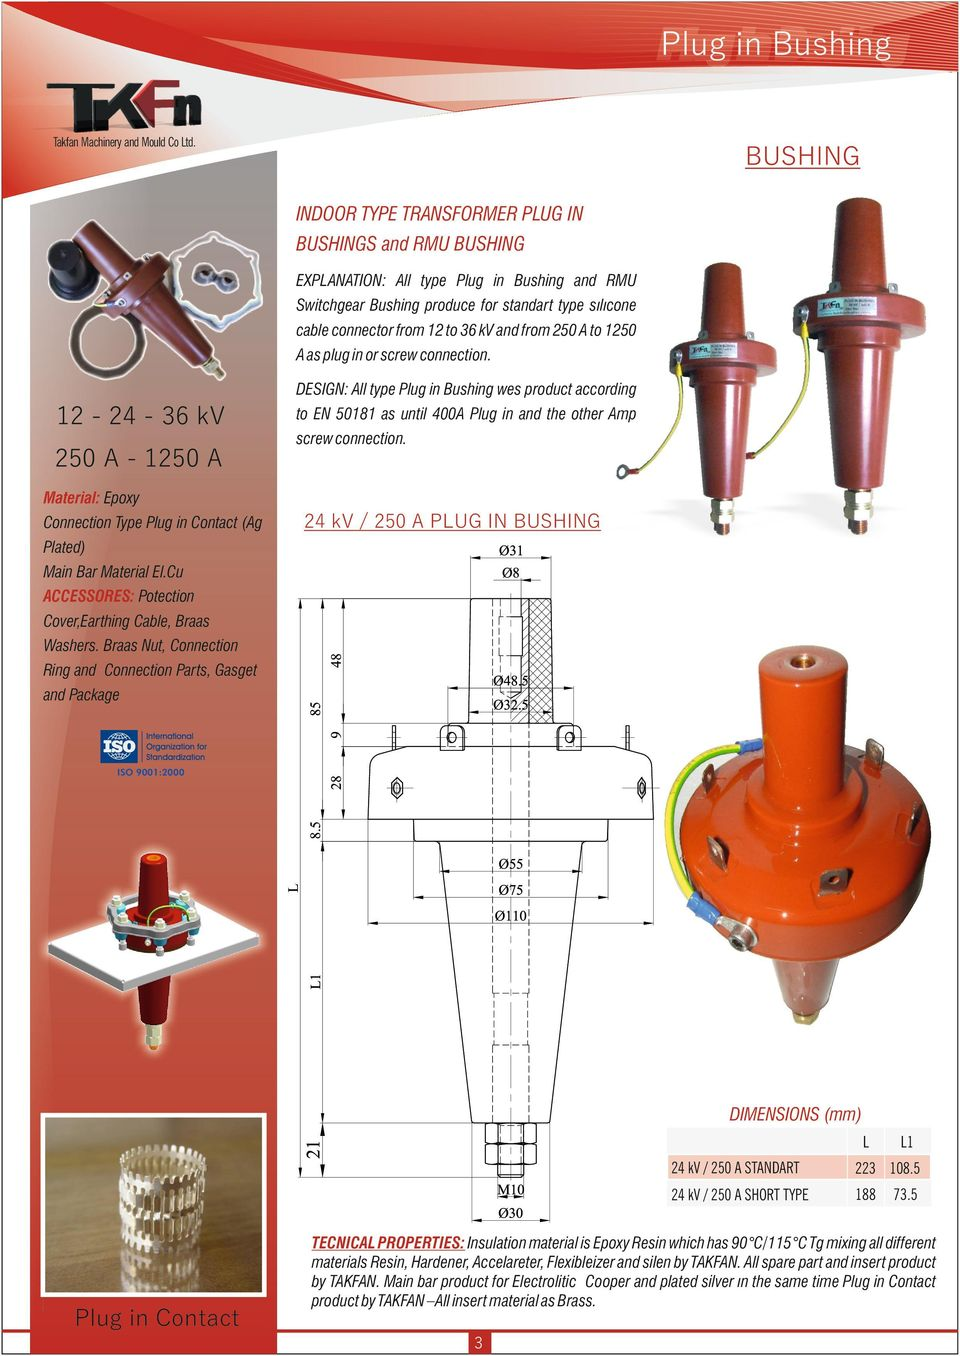 DESIGN: All type Plug in Bushing wes product according 12-24 - 36 kv 250 A - 1250 A to EN 50181 as until 400A Plug in and the other Amp screw connection.